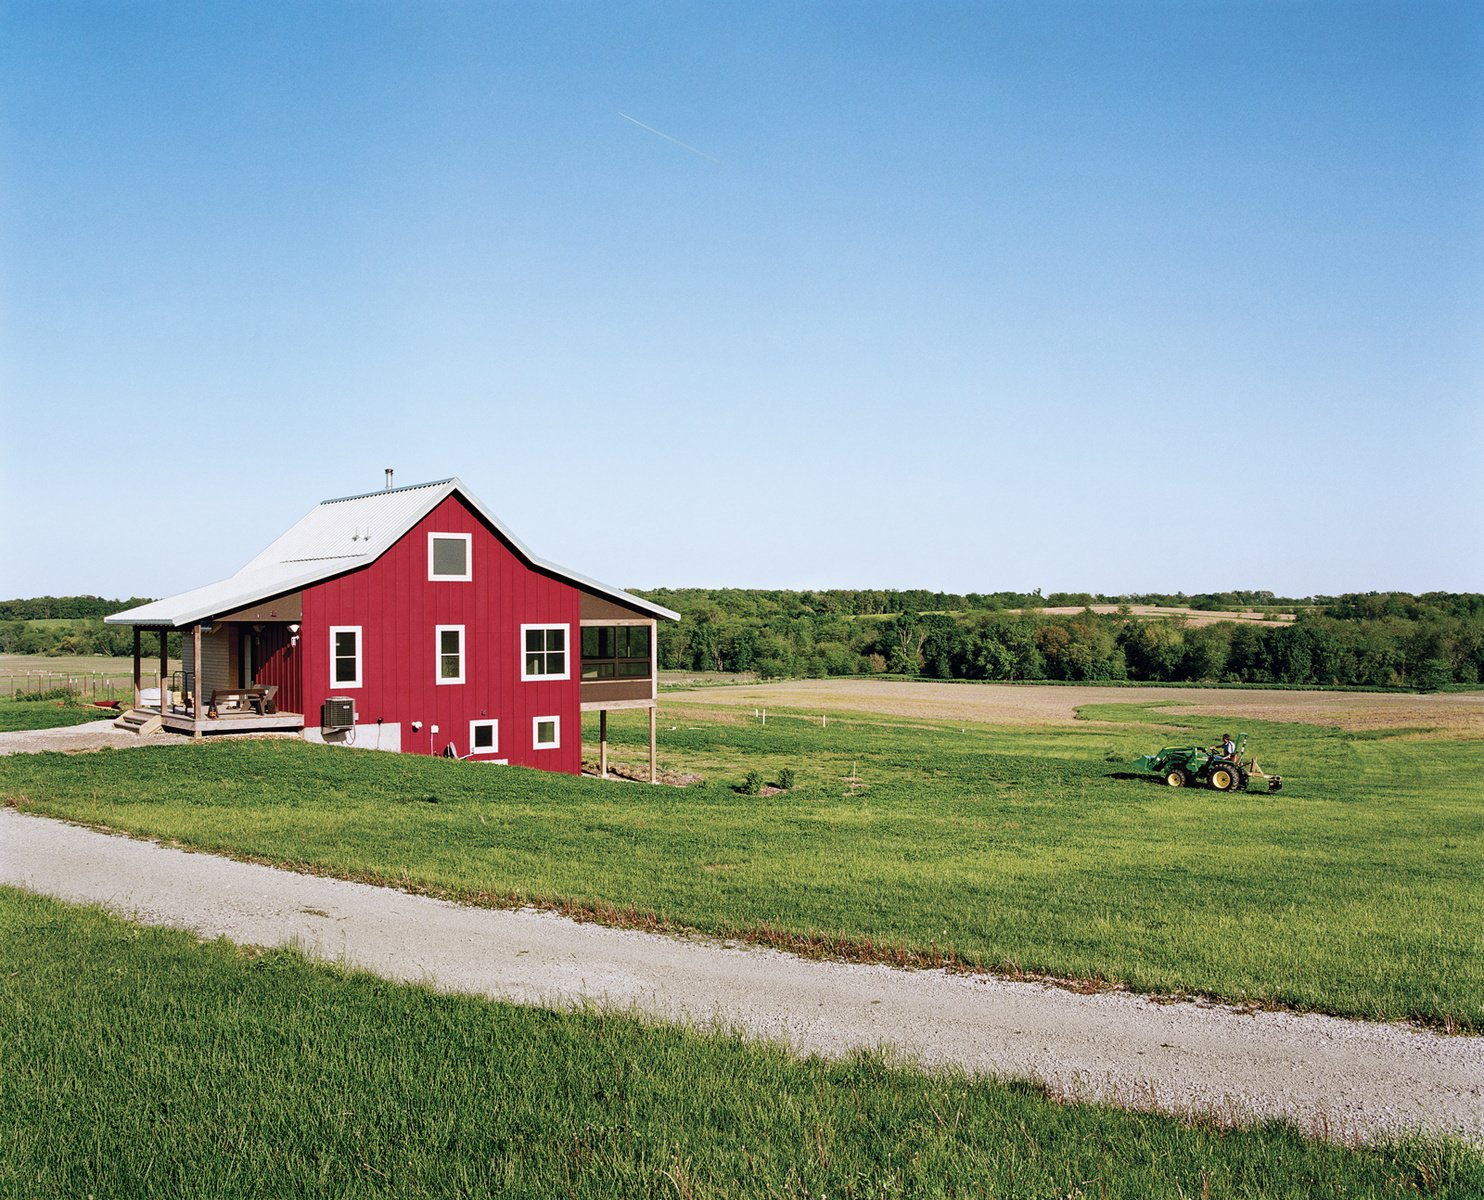 Geoff and Joanna Mouming's compact modern farmhouse is the first permanent structure at Yum Yum Farm in Wellman, Iowa. On the field that stretches out before it, organic vegetables will soon make attentive farmers of the Moumings. Photo by: Mark Mahaney